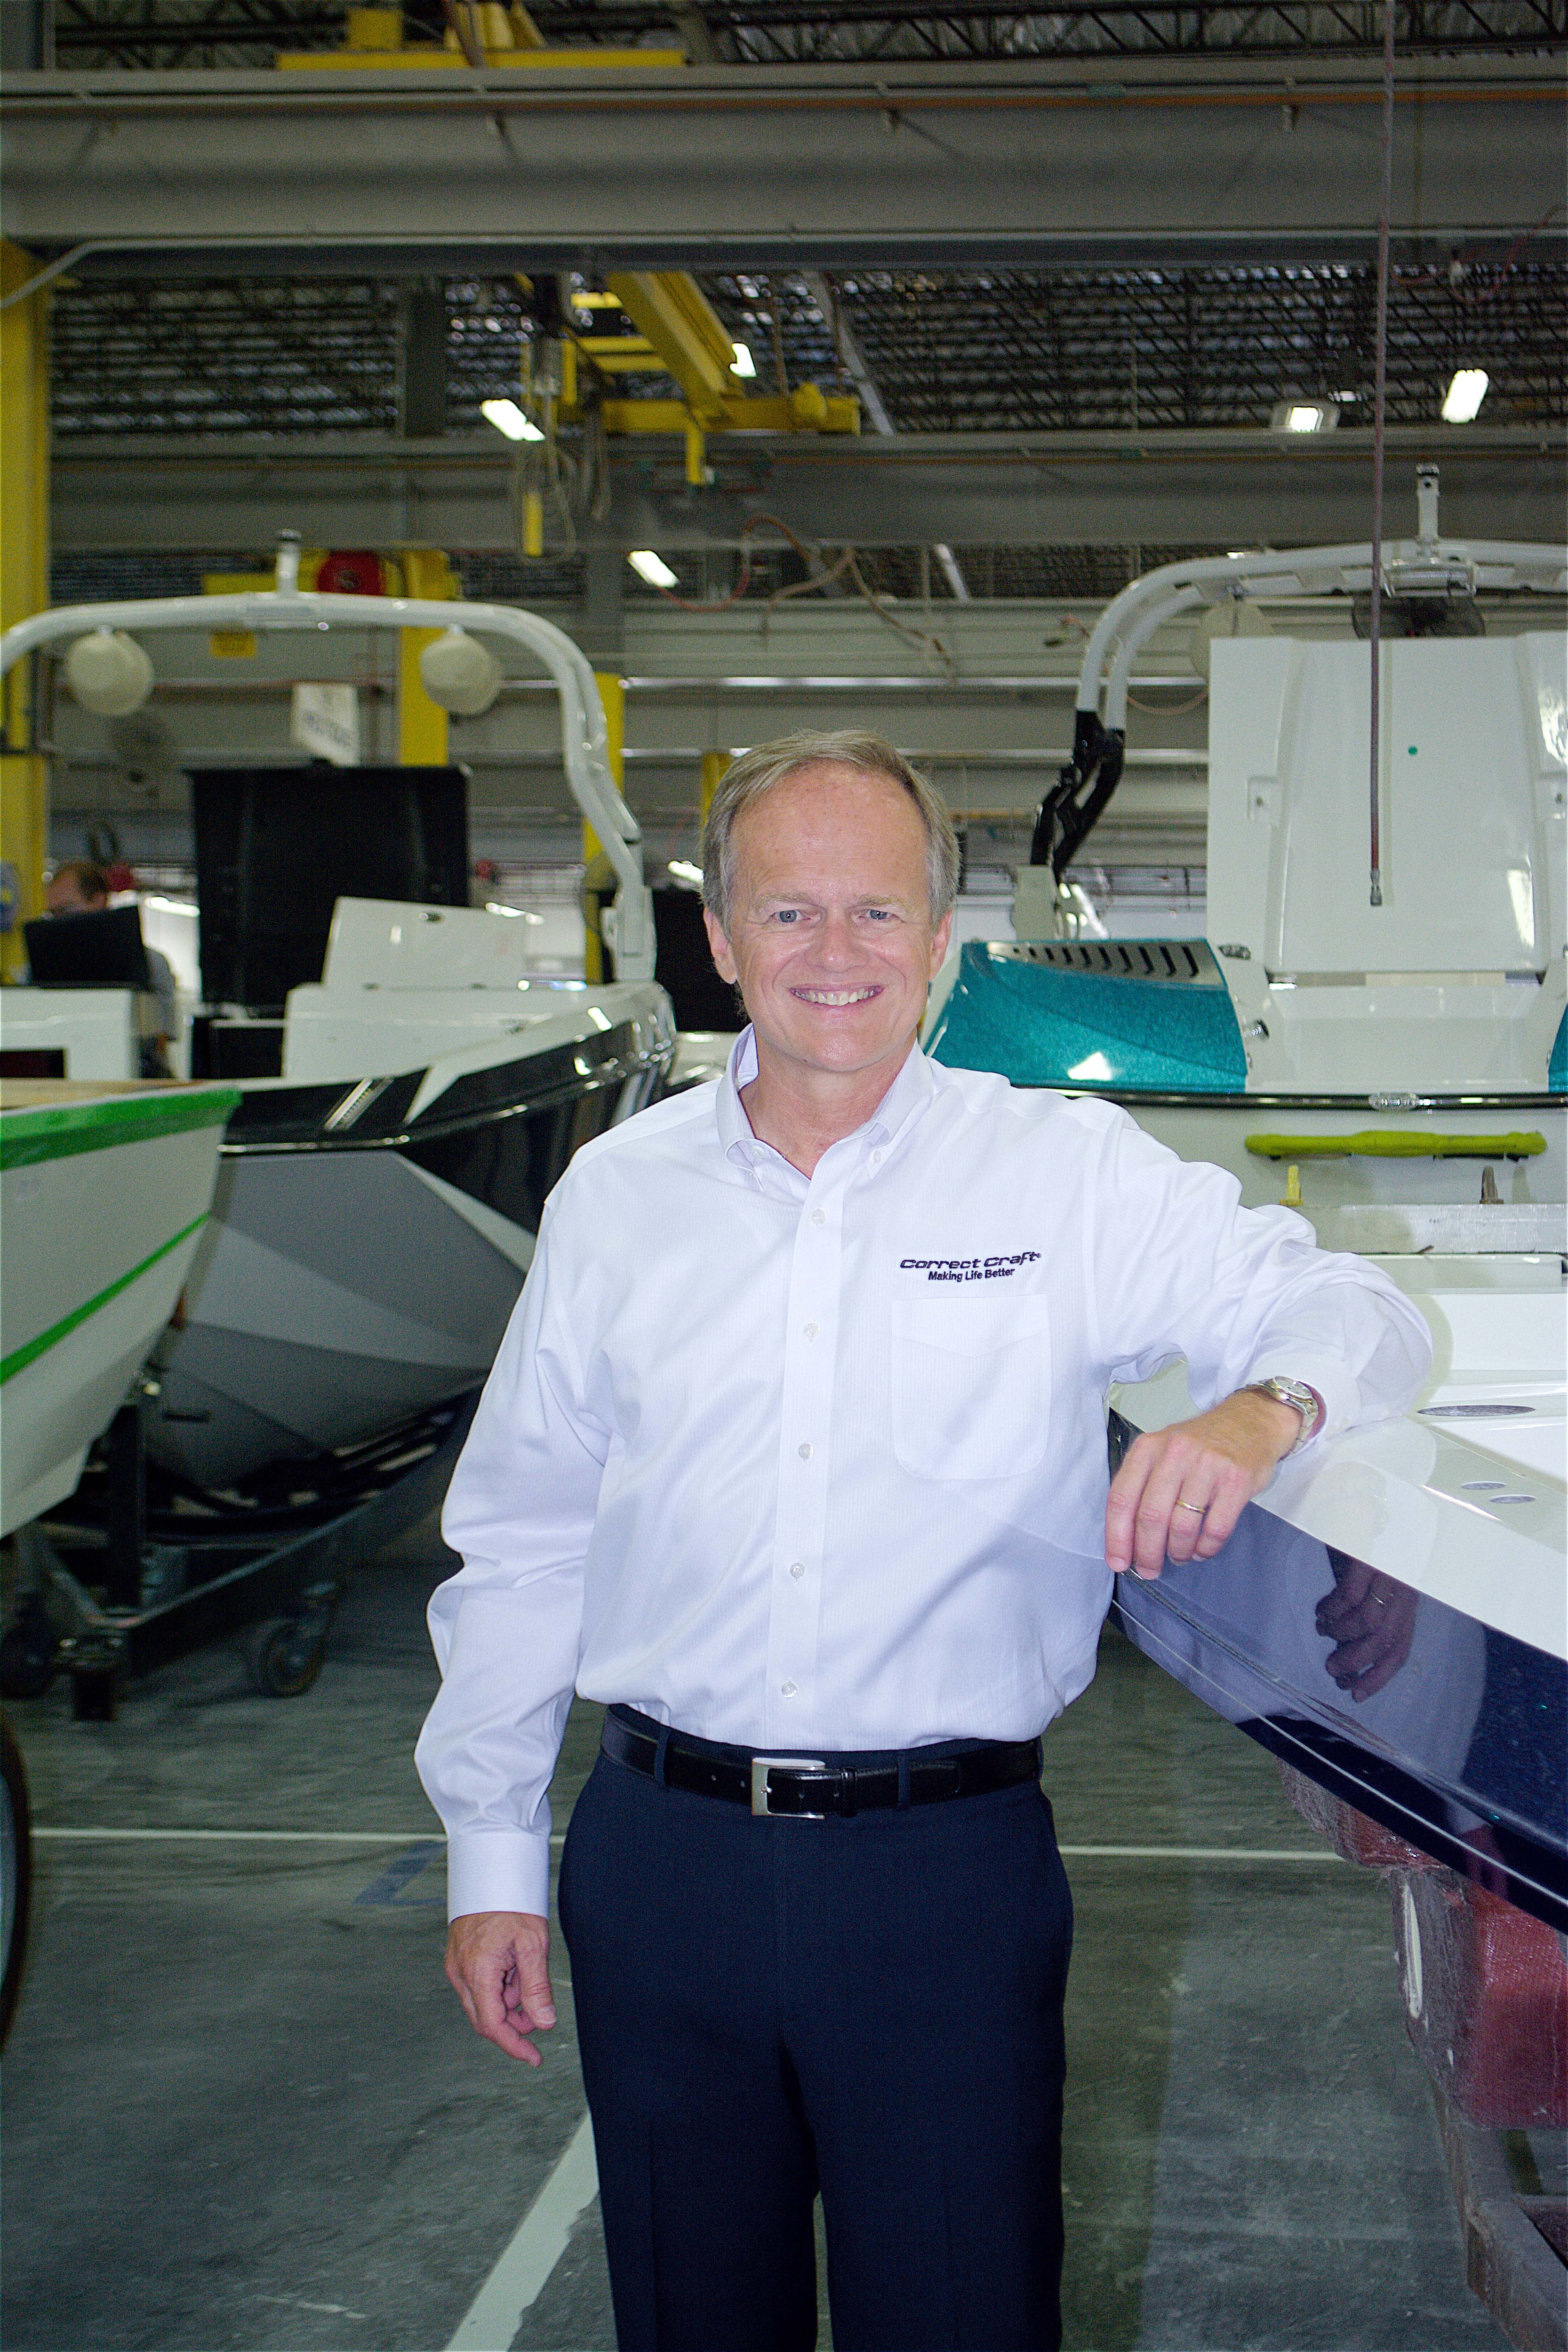 Boat maker, farmer, auto parts CEO feel the pain of a growing trade war under Trump